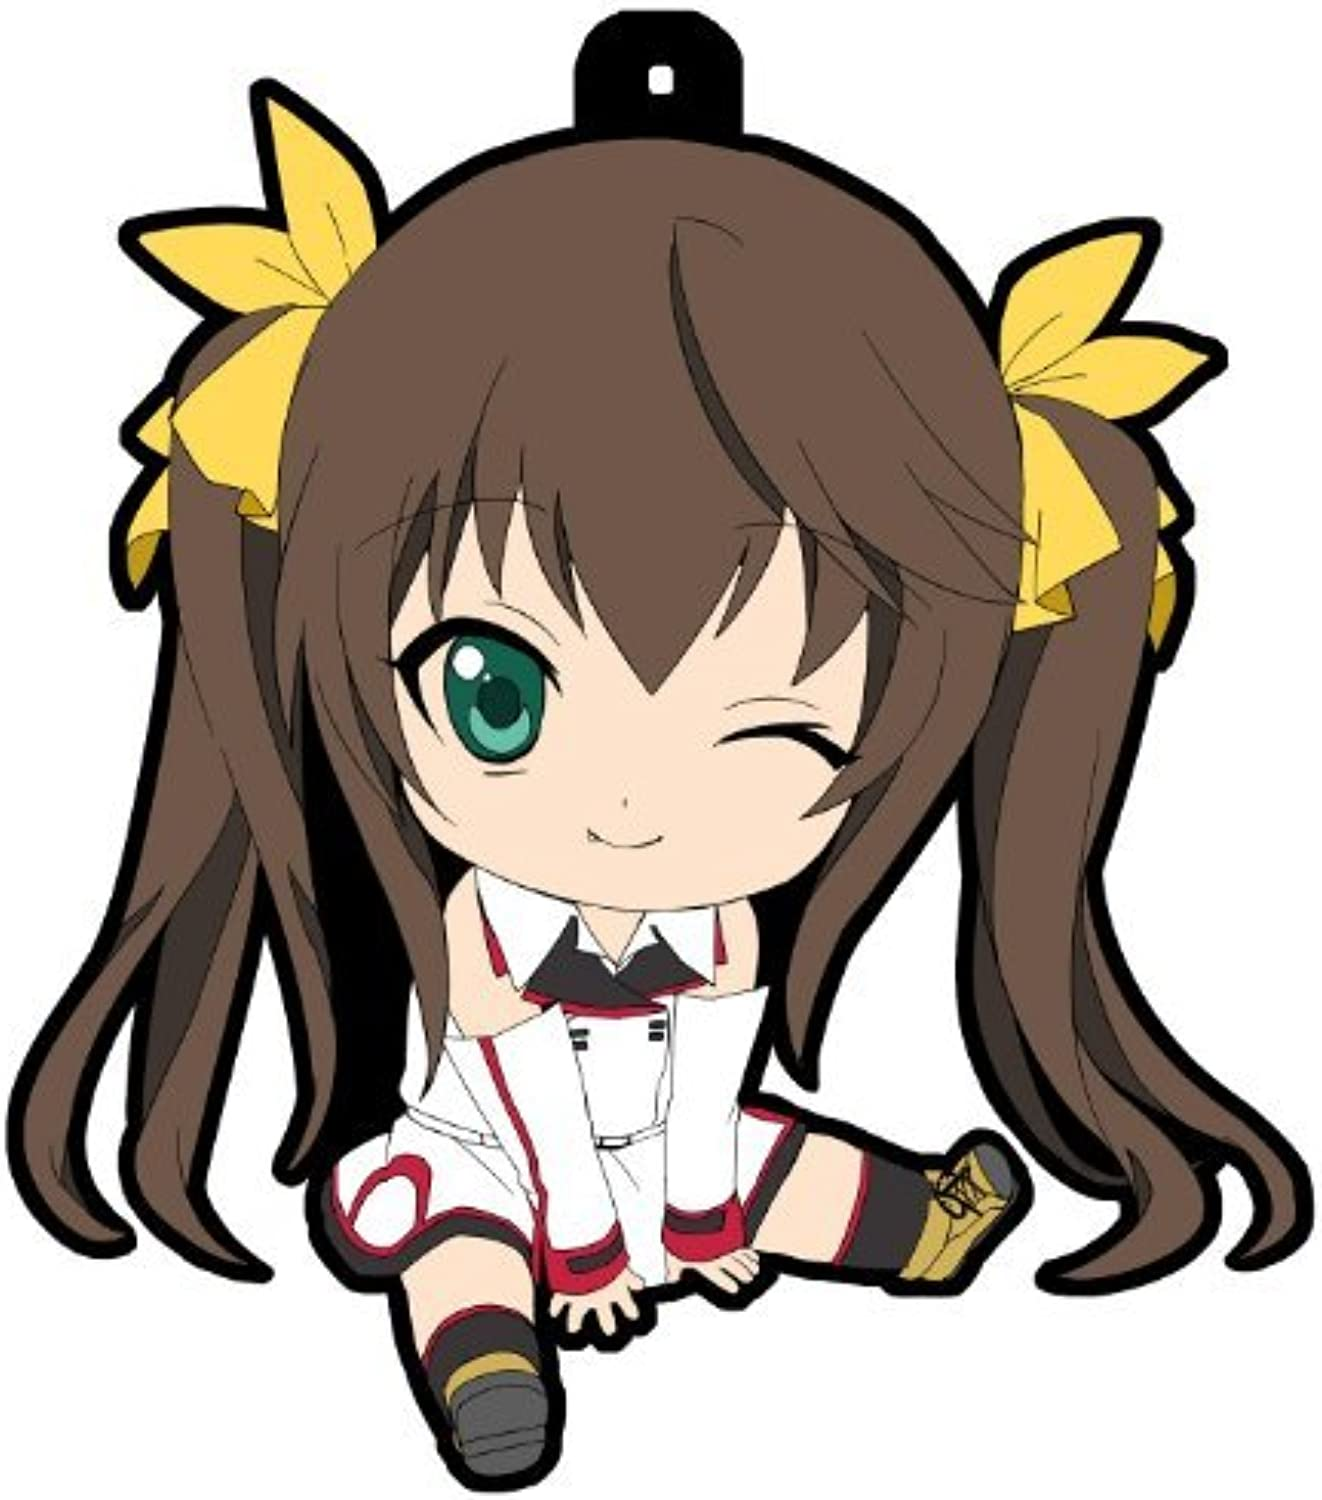 muy popular IS (Infinite Stratos) Rubber Strap Rin by Penguin Parade Parade Parade  últimos estilos